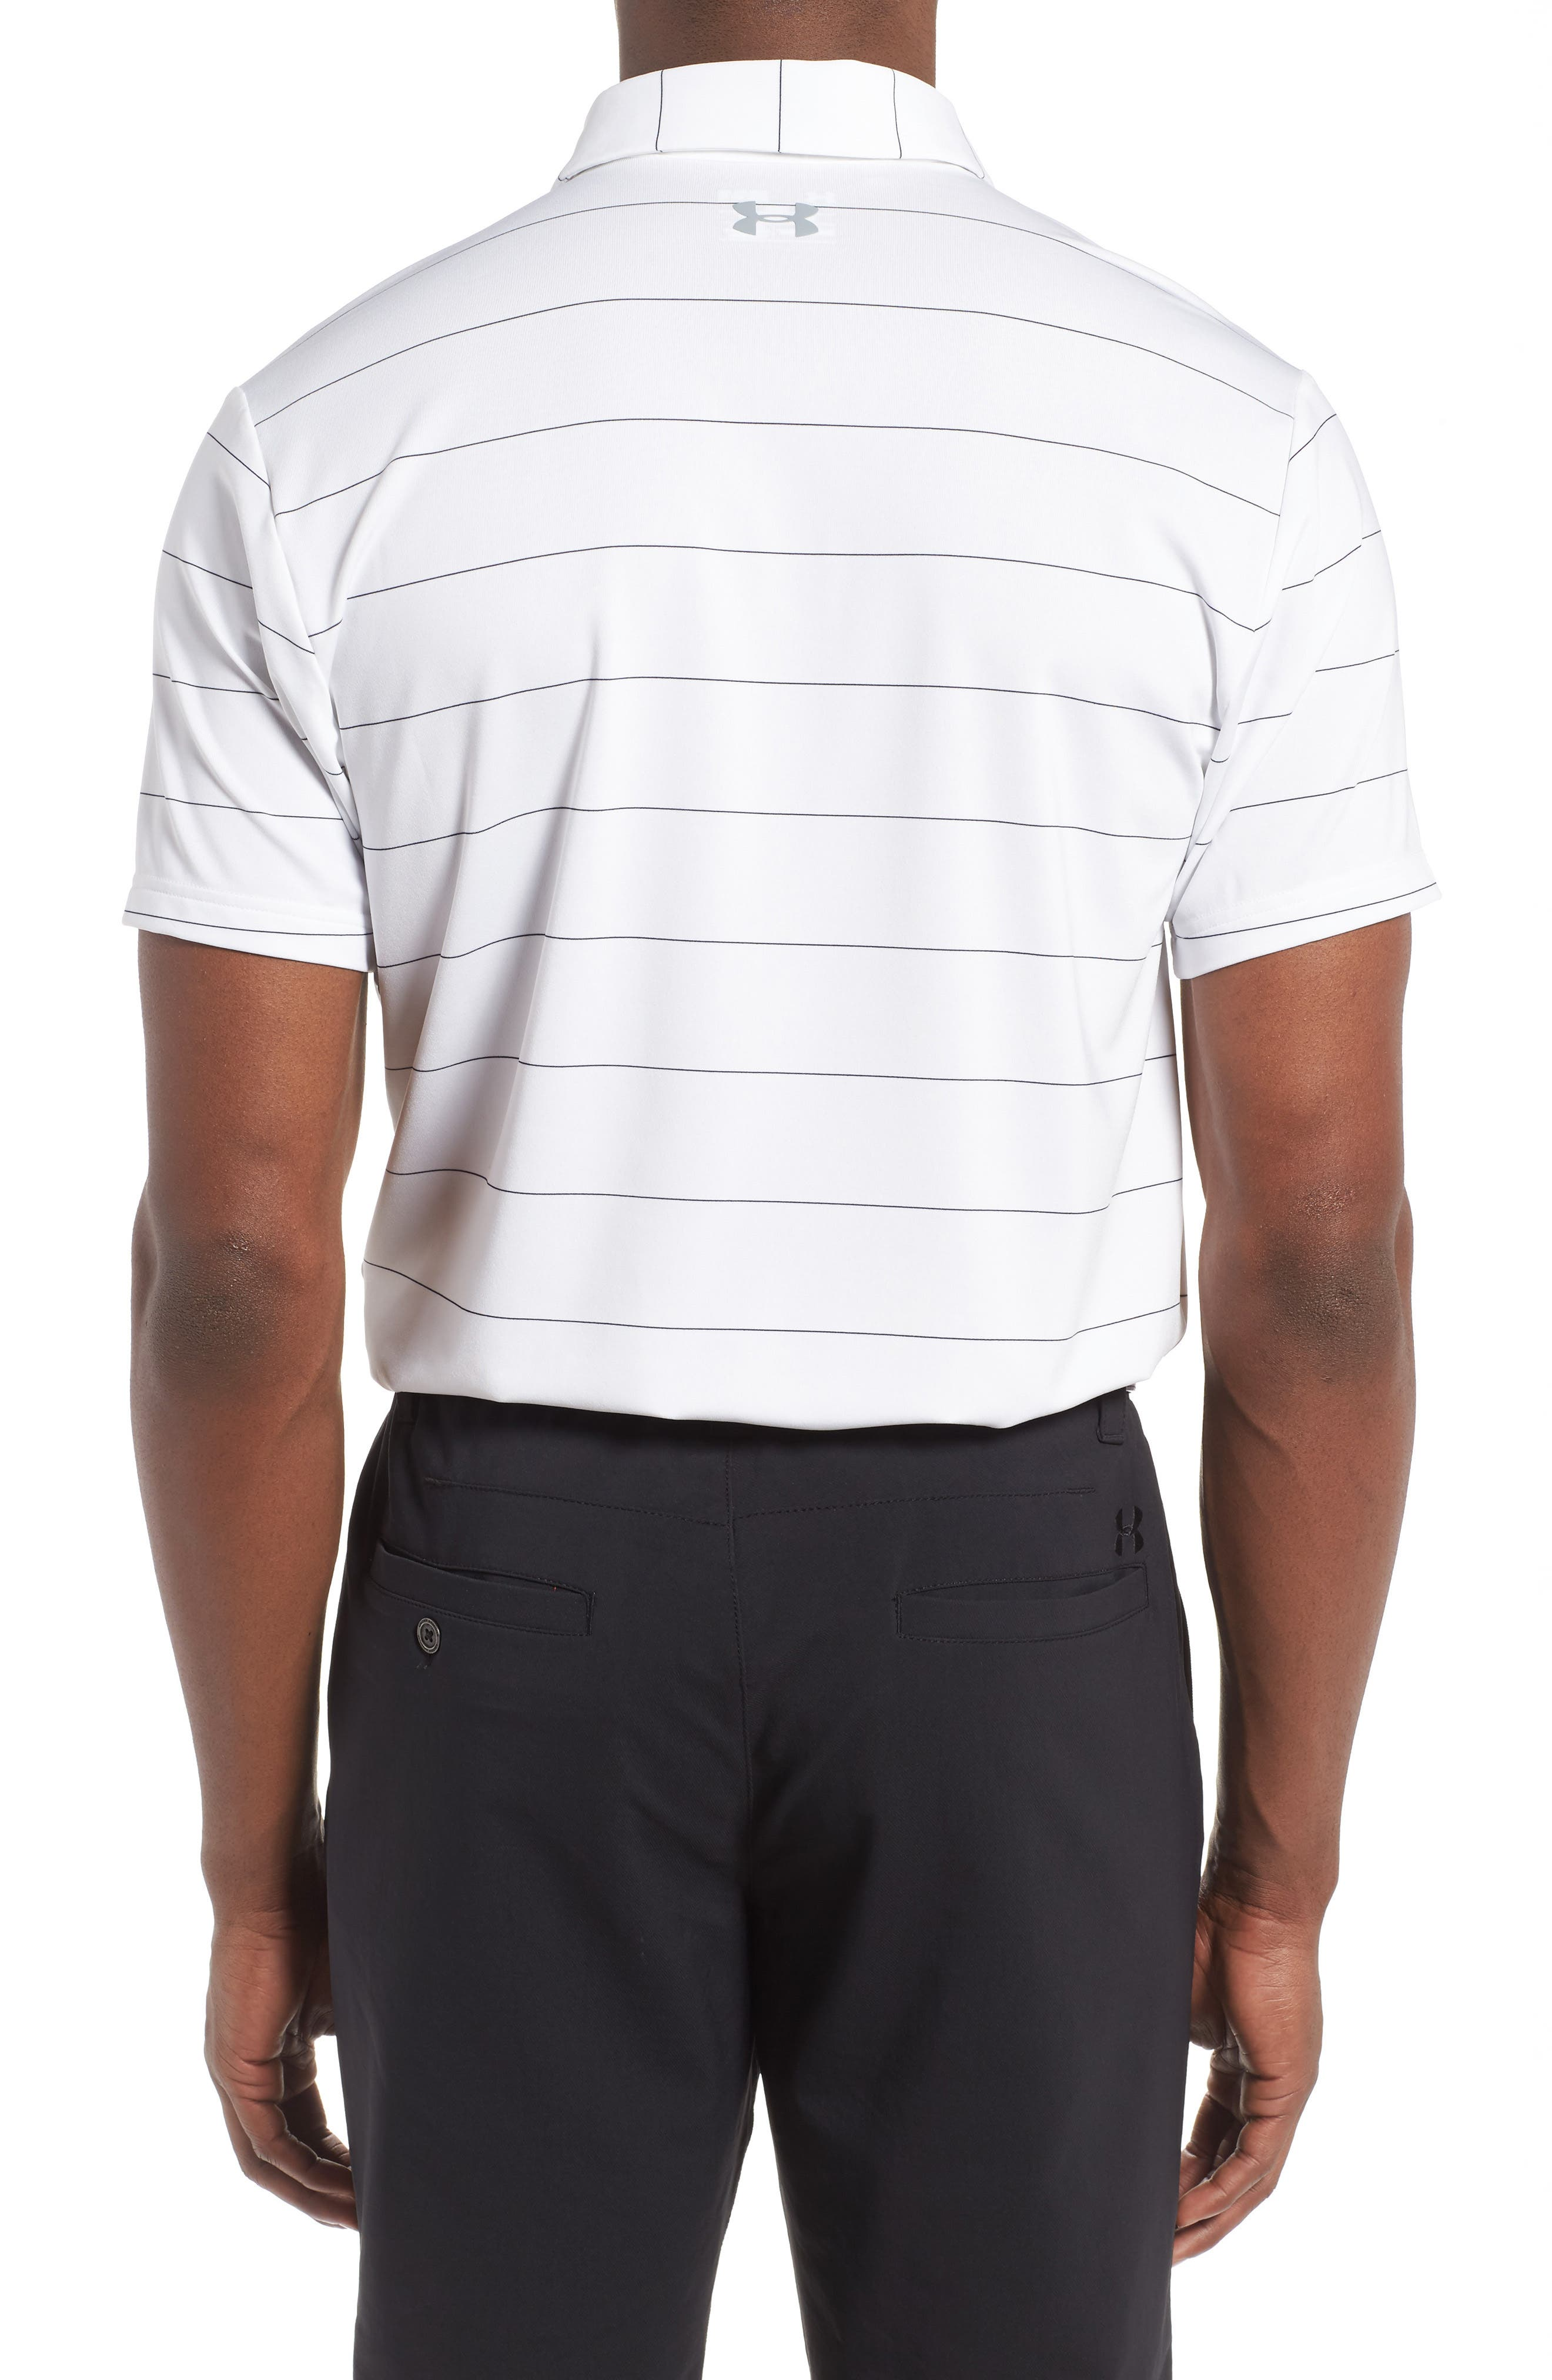 Alternate Image 2  - Under Armour 'Playoff' Loose Fit Short Sleeve Polo